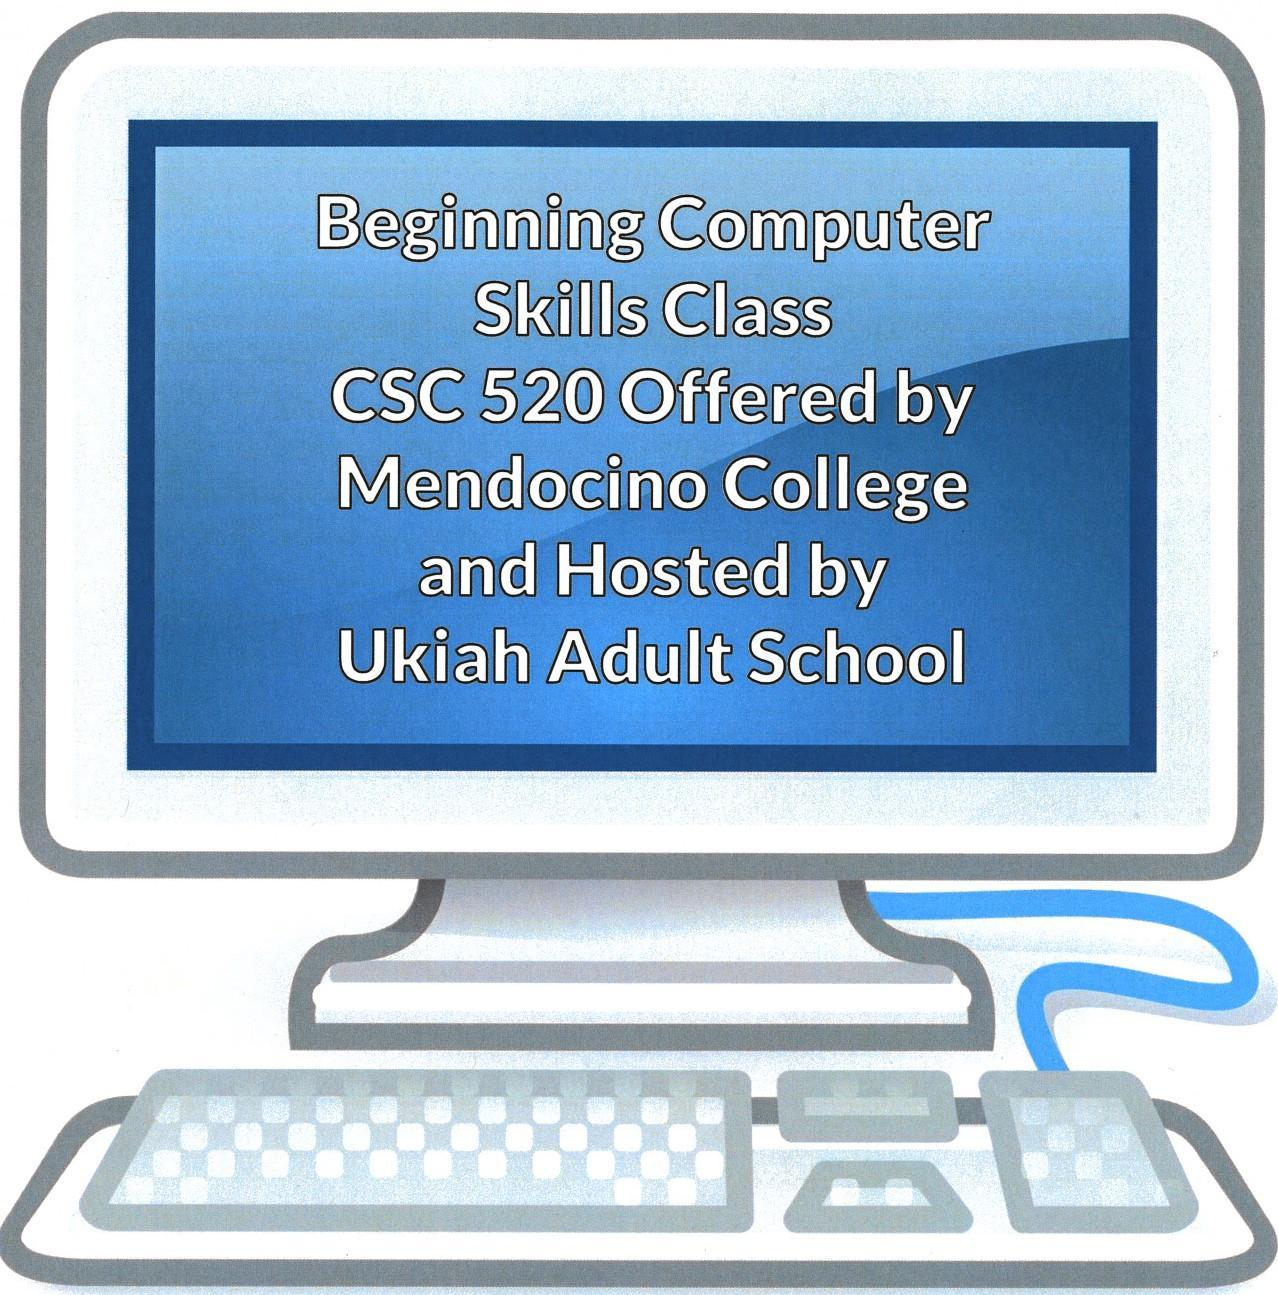 Beginning Computer Skills I (CSC 520) is offered by Mendocino College and hosted by Ukiah Adult School words on a computer screen poster